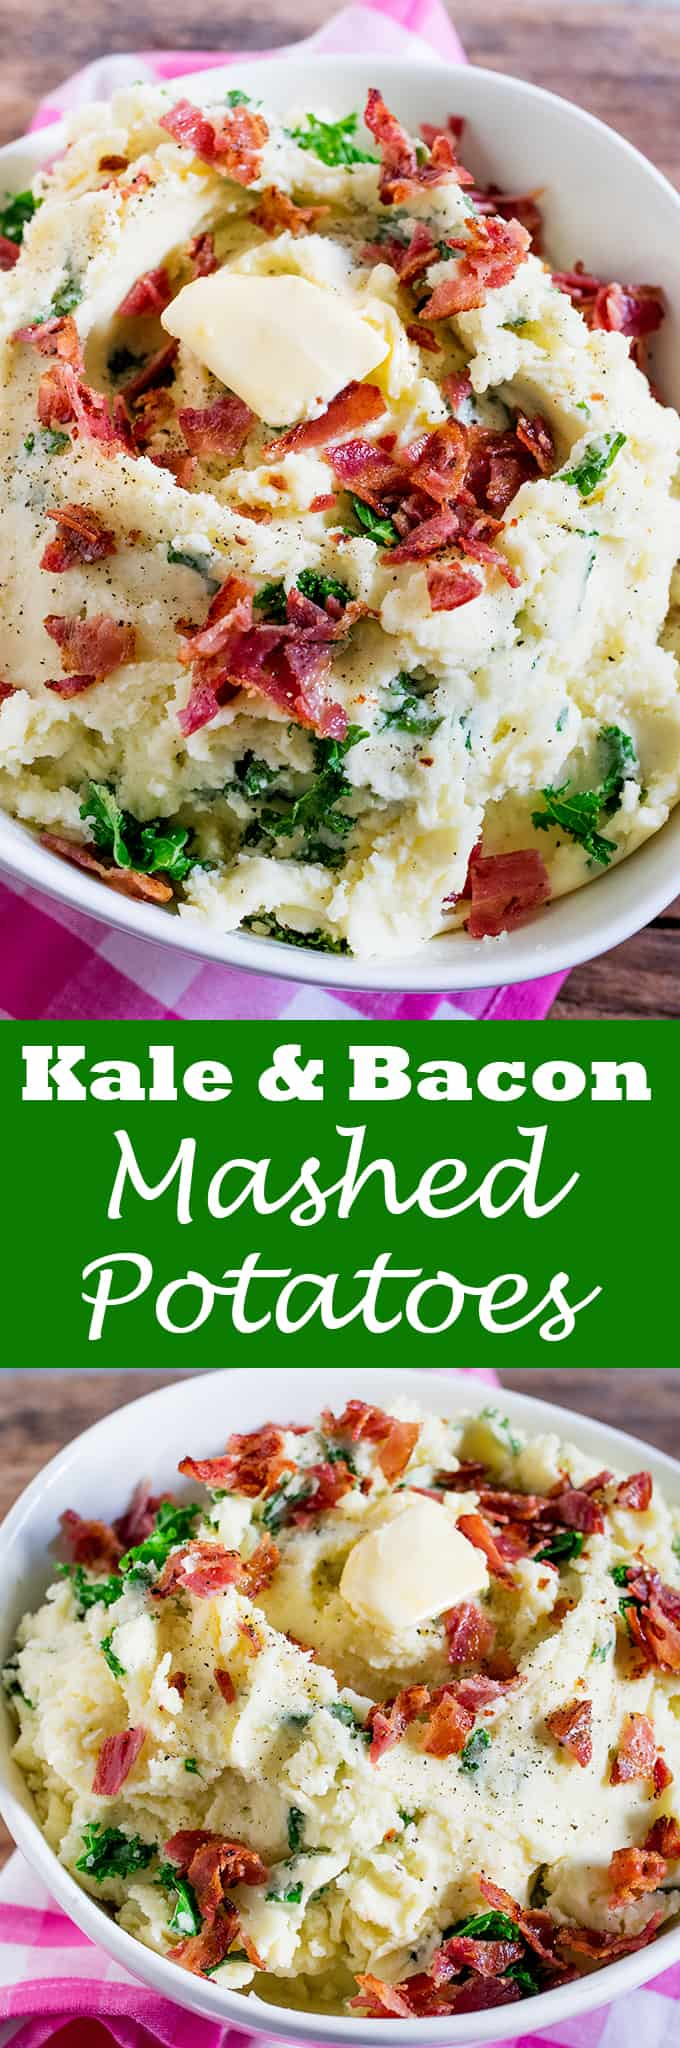 Buttery Kale and Bacon Mashed Potatoes makes a great side dish - or even a meal in itself! Perfect as a side dish for Christmas or Thanksgiving.